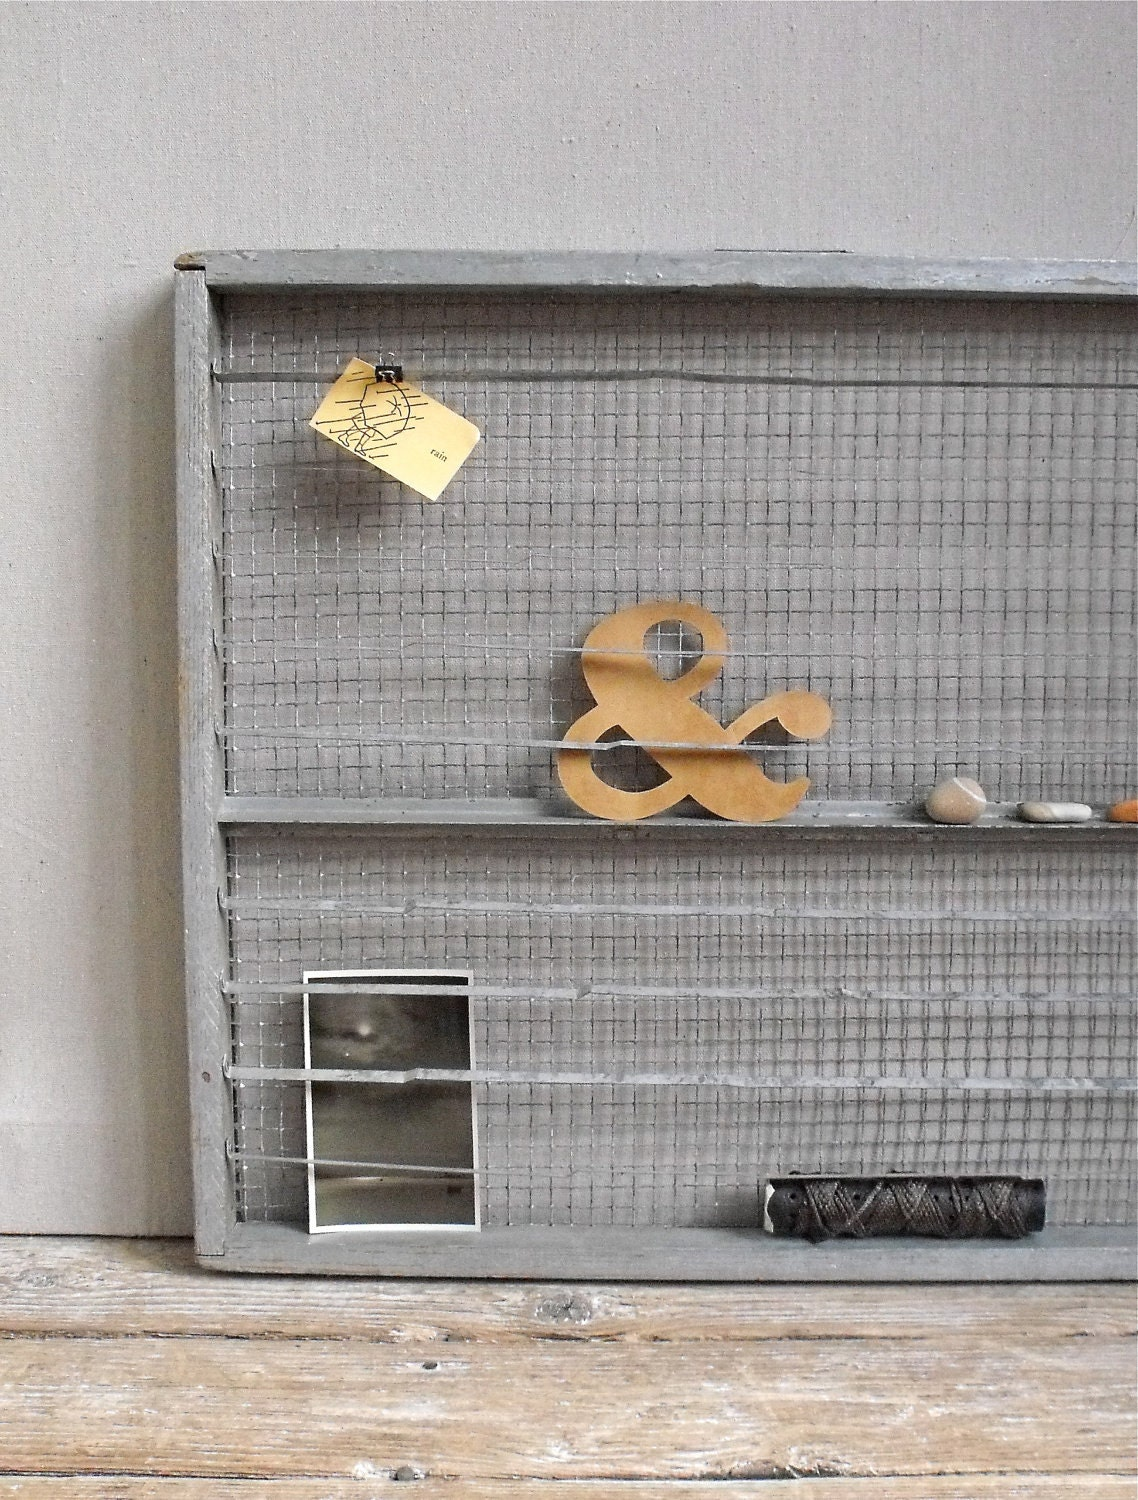 Vintage Industrial Egg Rack : Repurposed Wall Organization - solsticehome